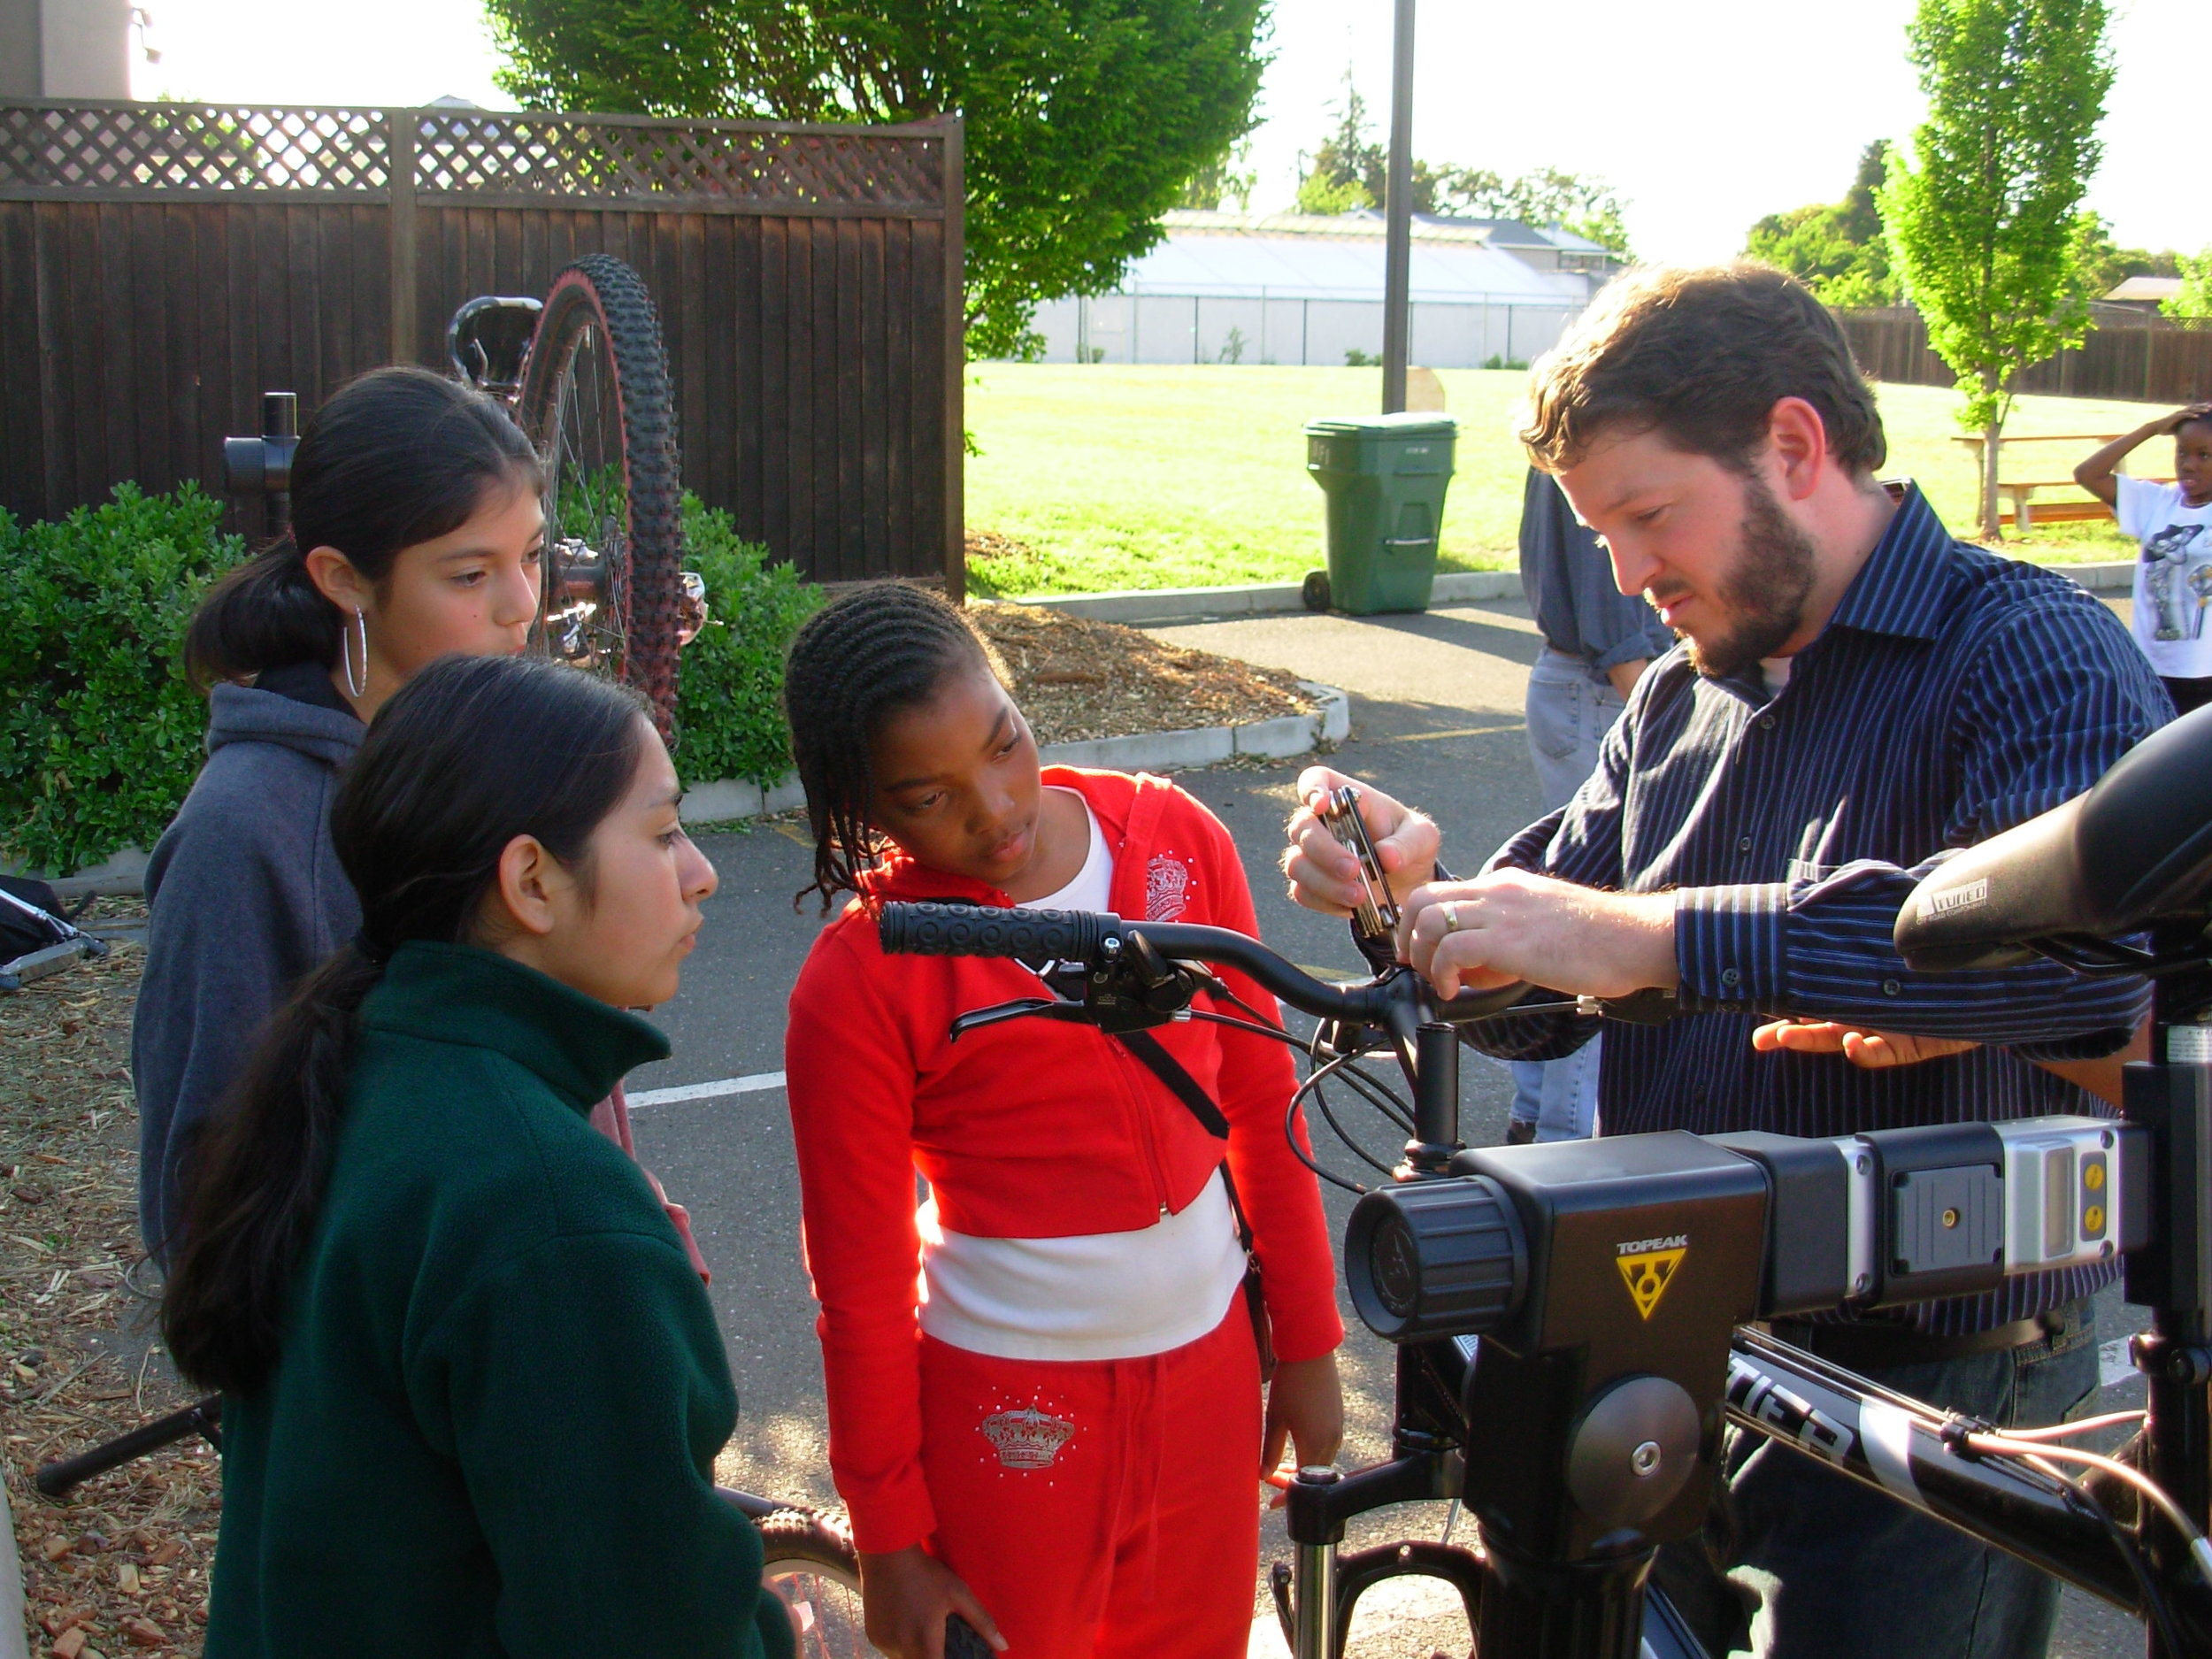 Where It Started - This photo of Justin teaching students how to work on a bike was taken almost 12 years ago when he first volunteered at BCM